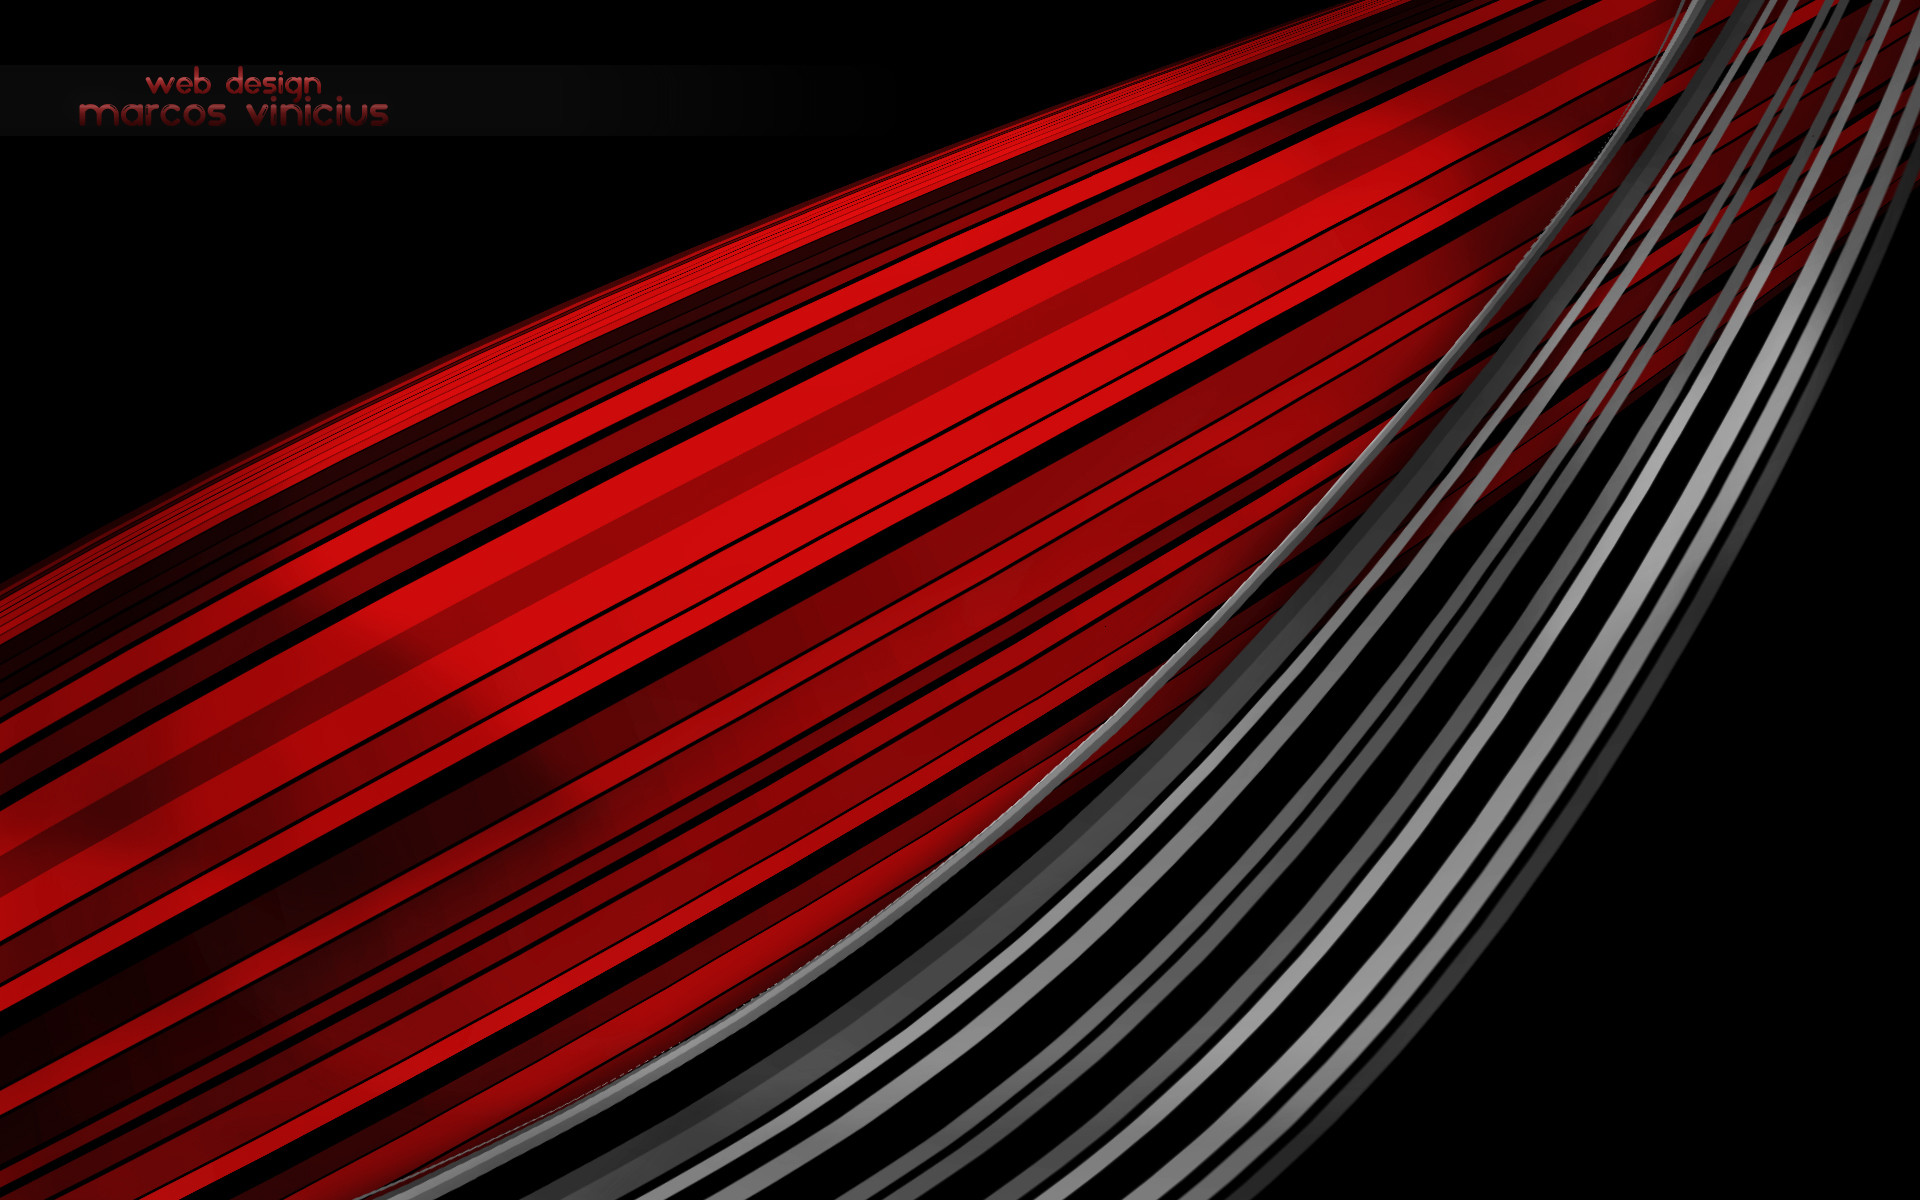 1920x1200 Red and black hd backgrounds download.